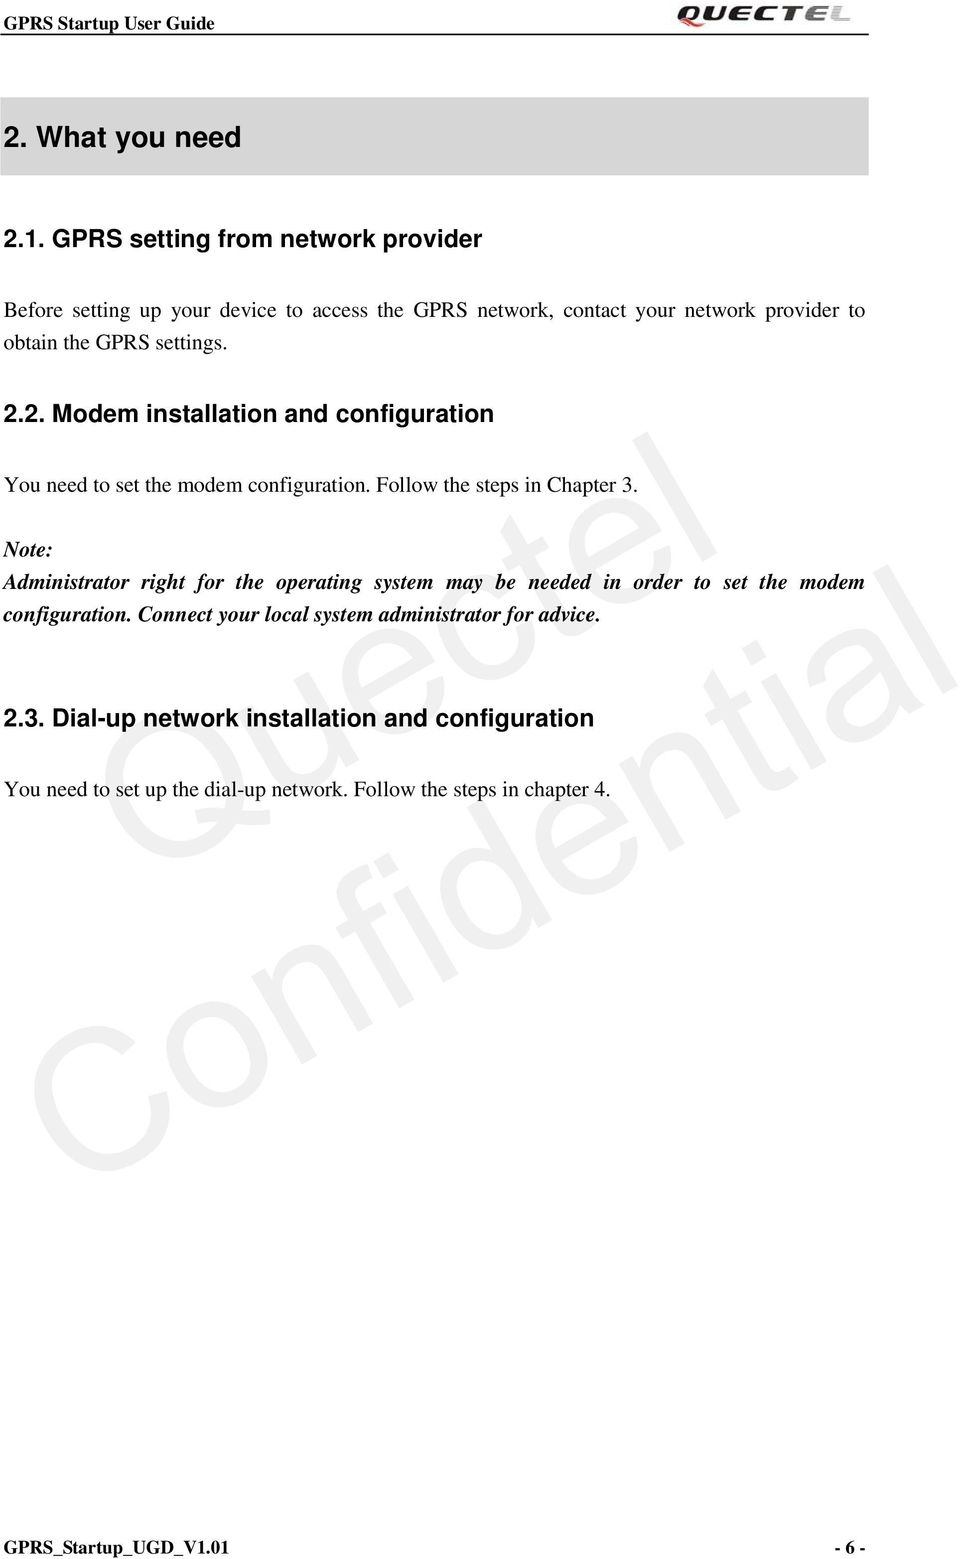 settings. 2.2. Modem installation and configuration You need to set the modem configuration. Follow the steps in Chapter 3.